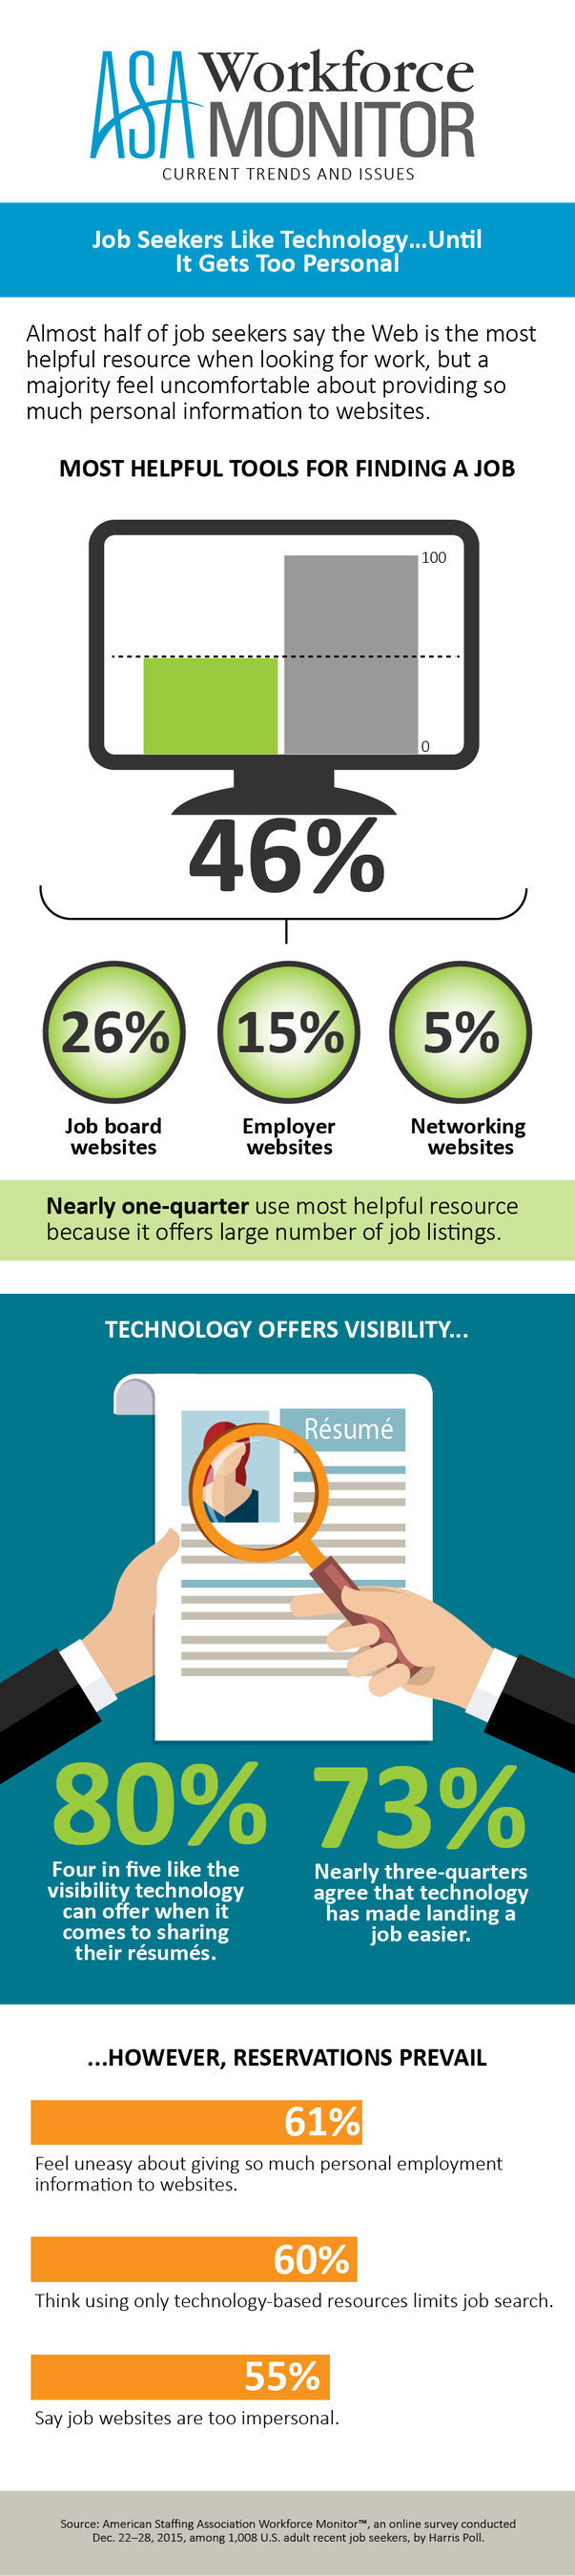 American Staffing Association Workforce Monitor: Job Seekers Like Technology...Until It Gets Too Personal